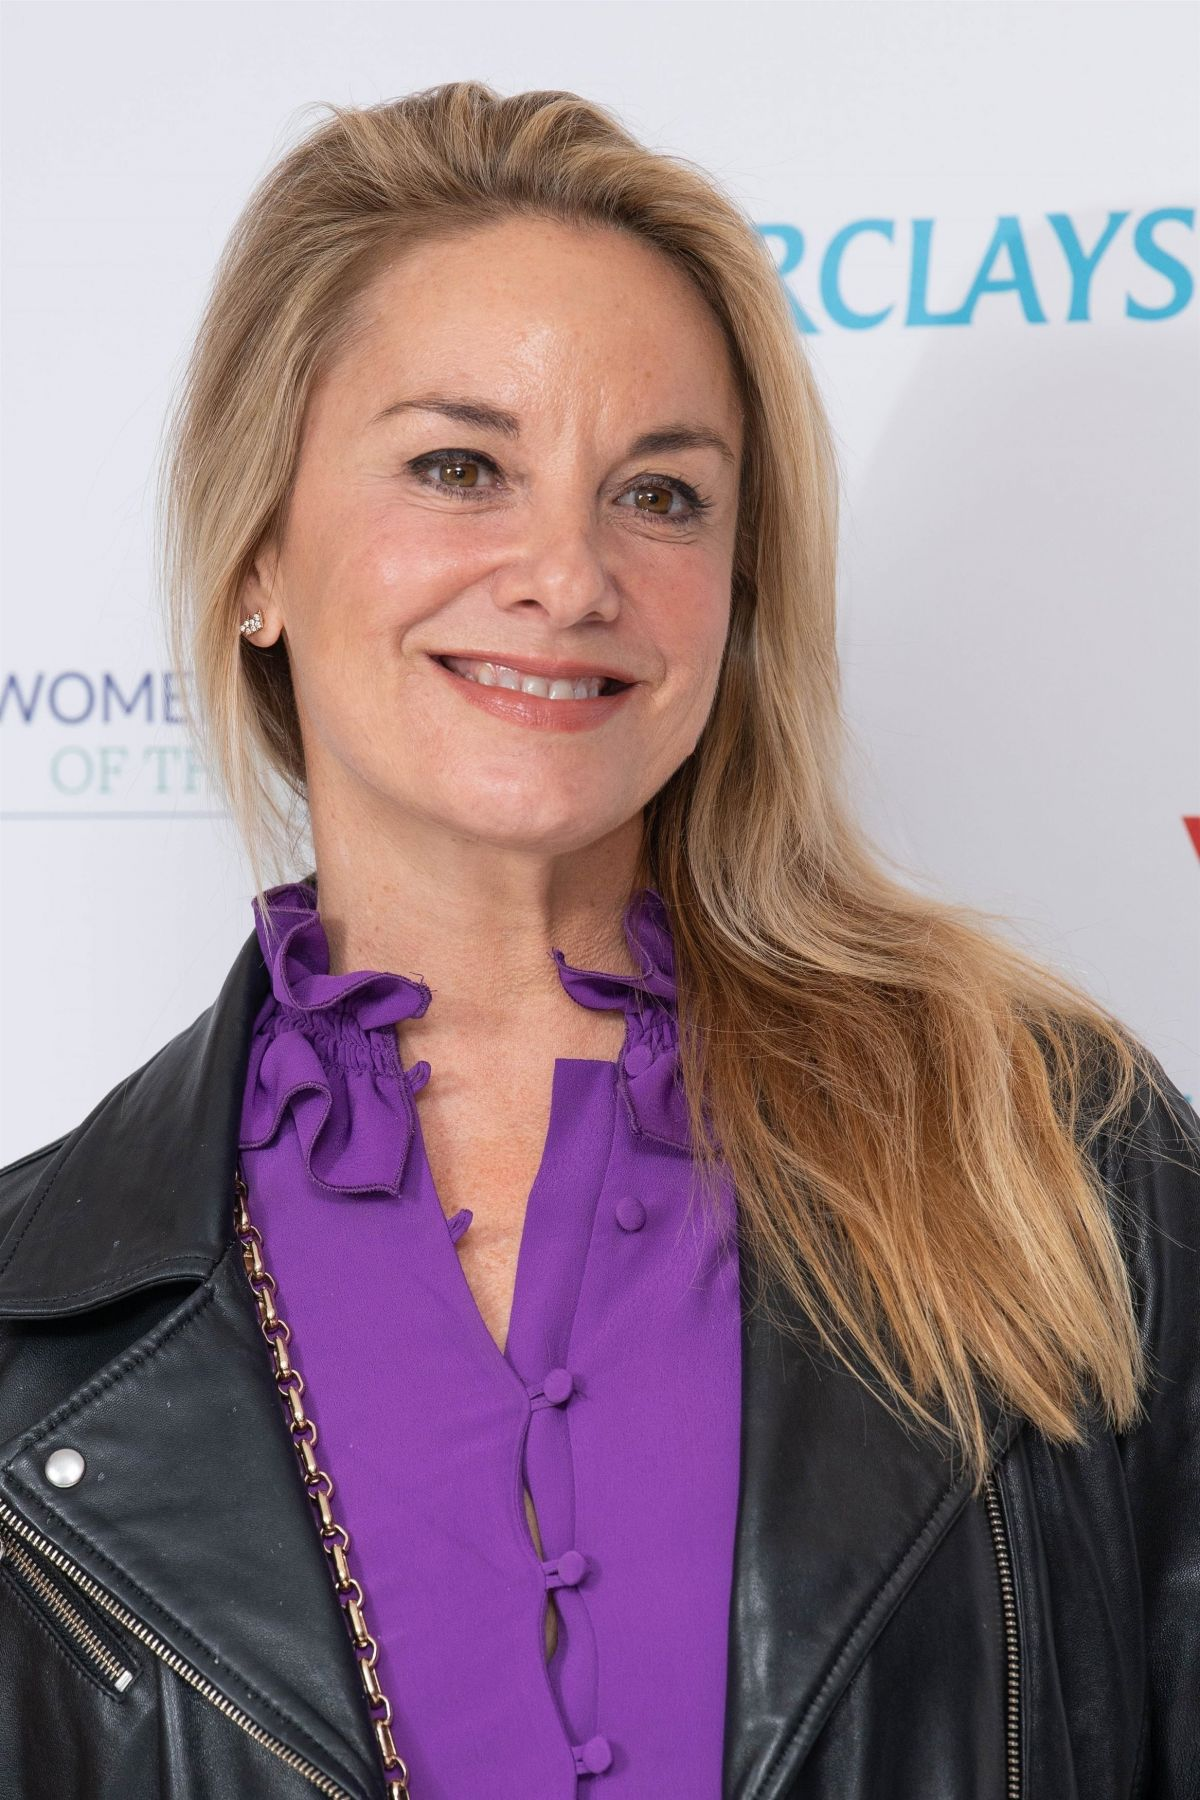 TAMZIN OUTHWAITE at Women of the Year Lunch and Awards in